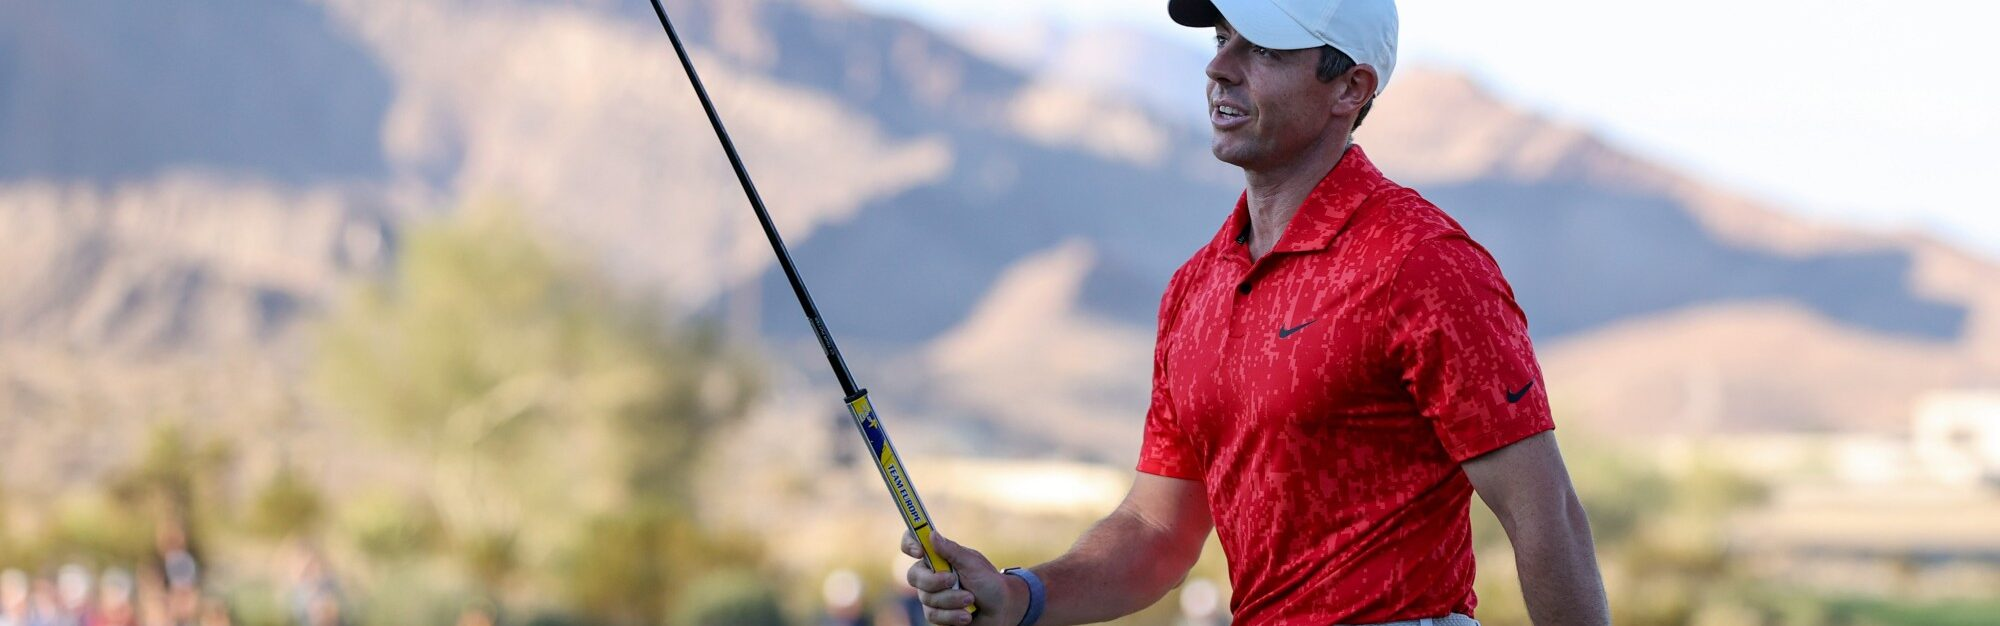 Rory once again rewrites golf's history books as the great Ryder Cup reset pays off